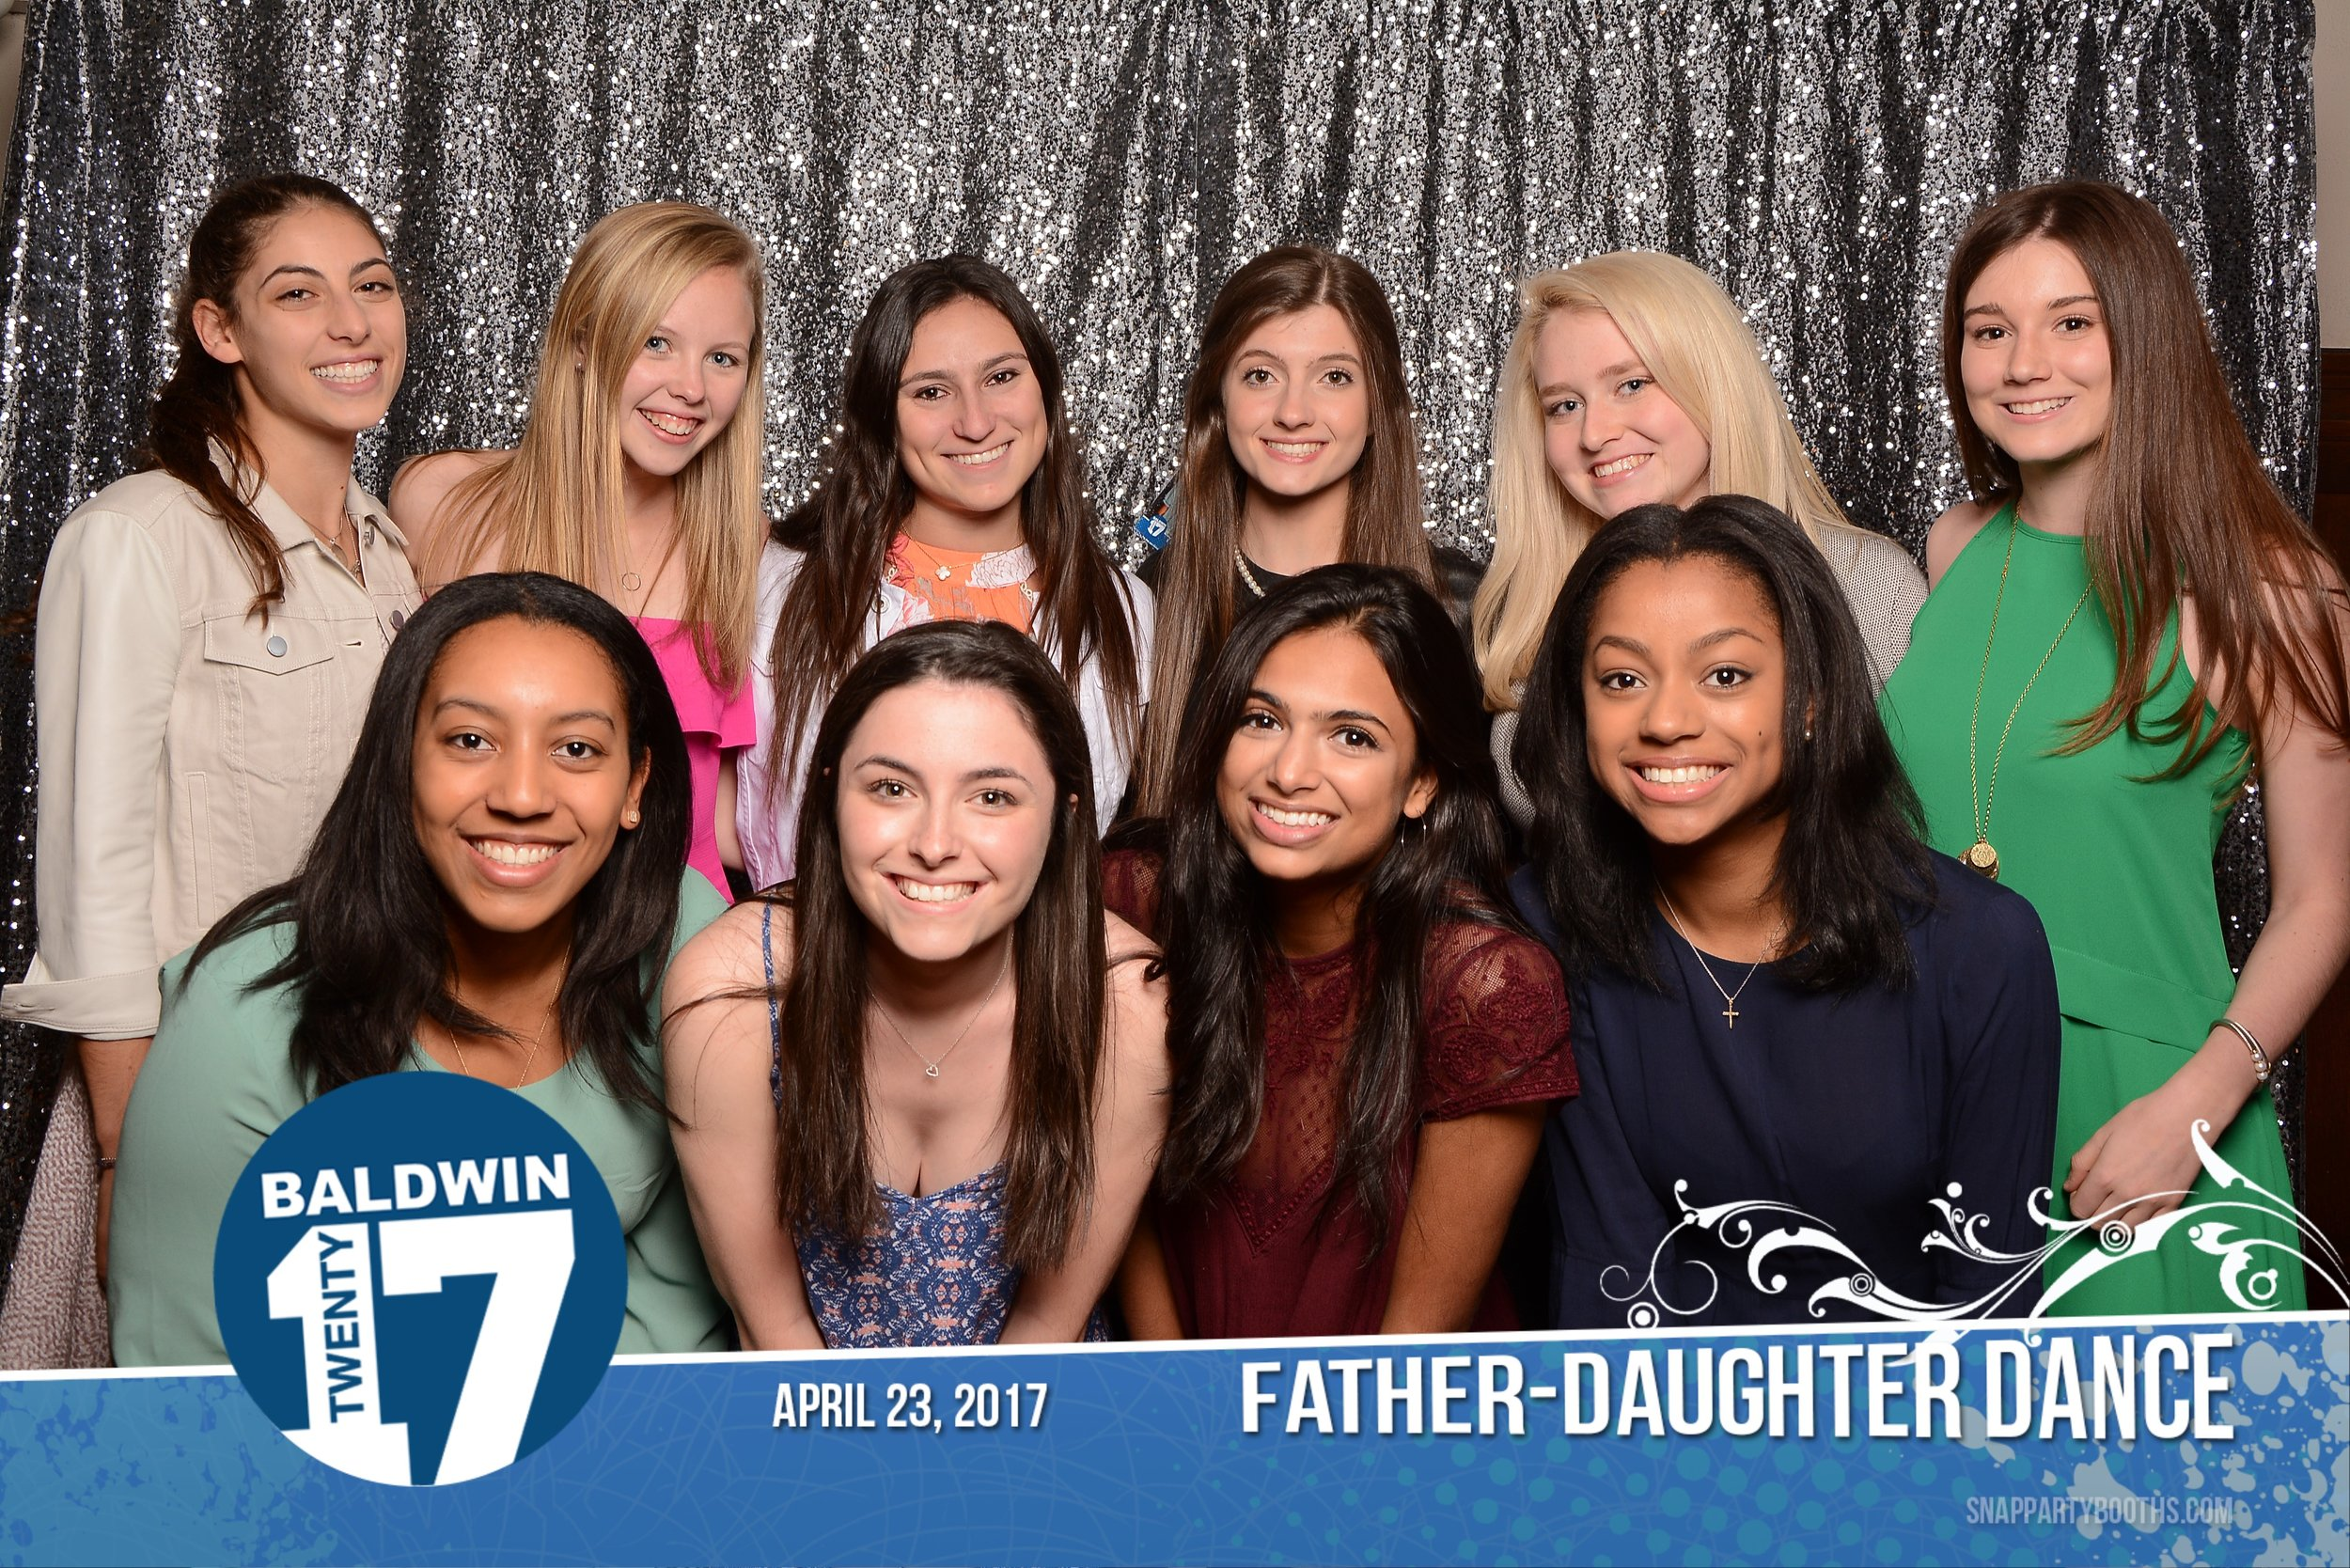 Snap-Party-Studio-Father-Daughter-Dance-Baldwin-School.jpg